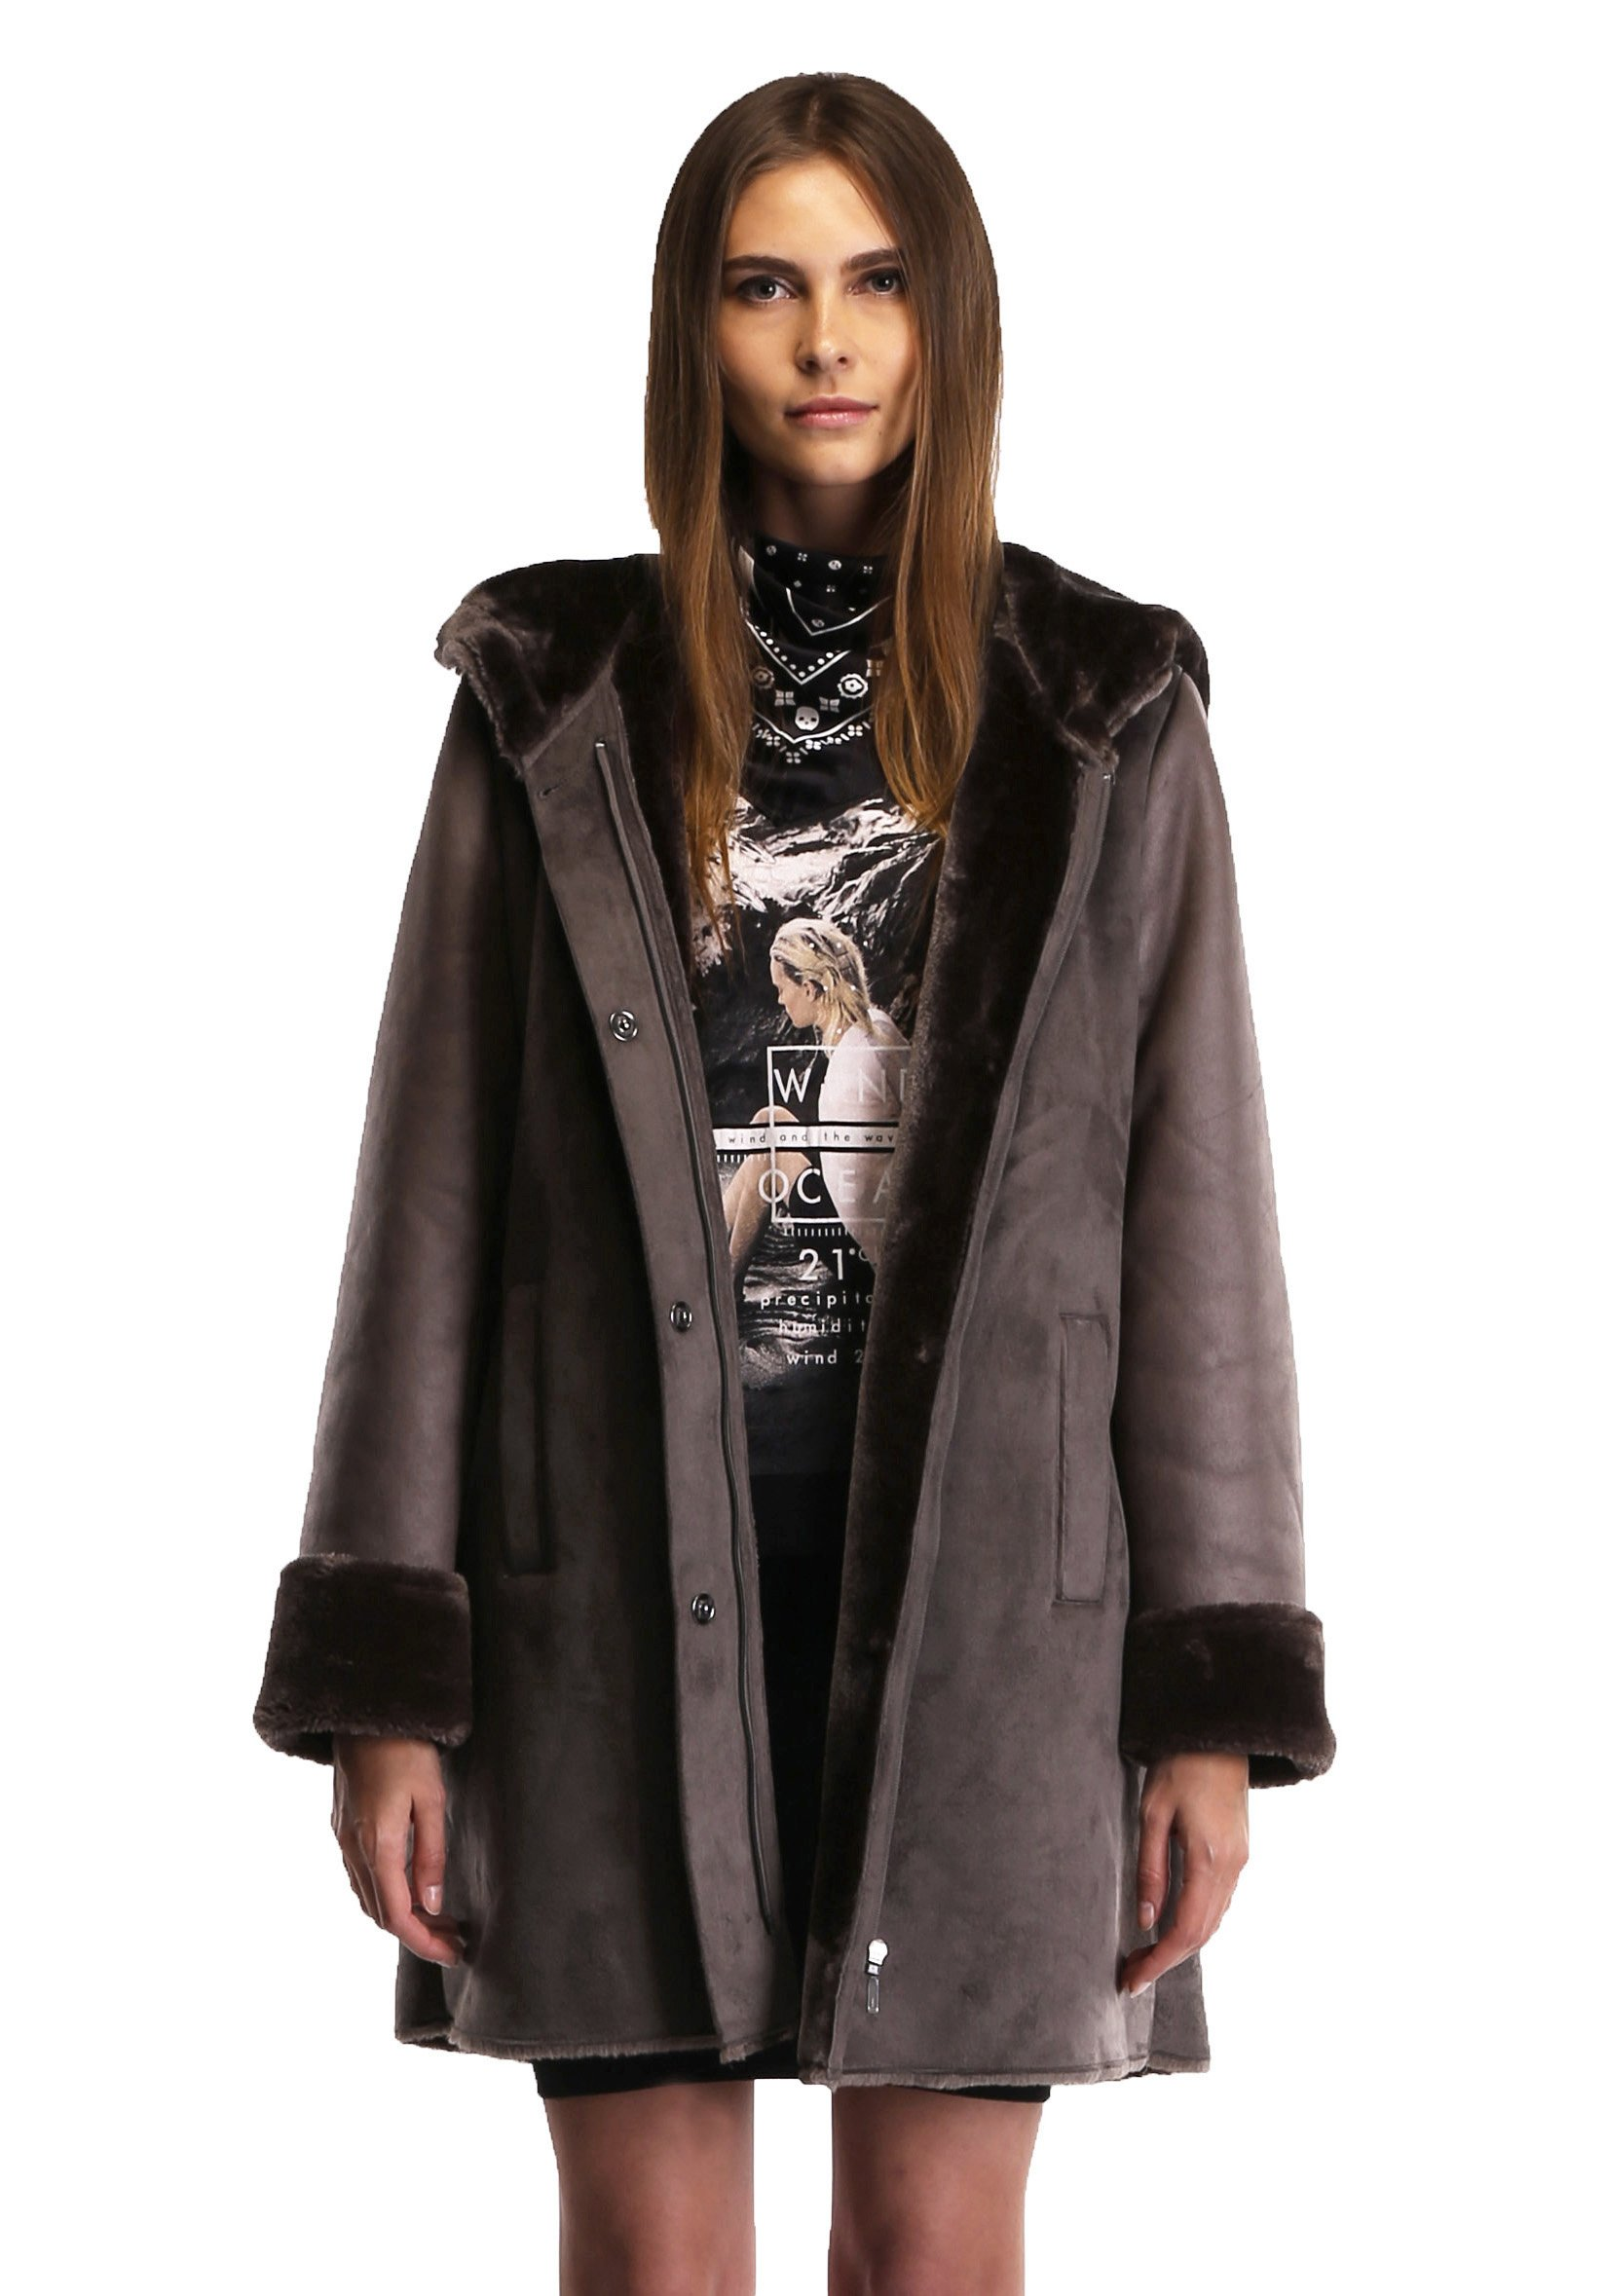 Enjoy Fur Women's 2016 New Style Dark Bronze Faux Leather Coat with Hood (Medium)